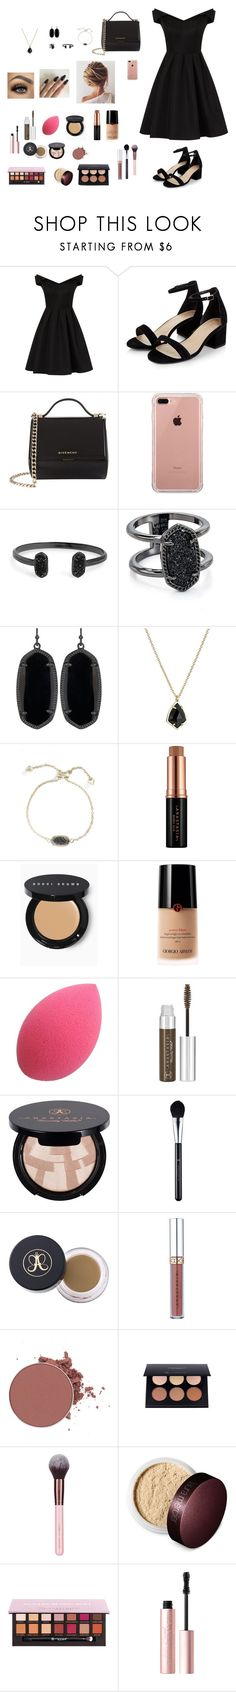 """""""orchestra banquet"""" by gabriellaallen on Polyvore featuring Chi Chi, Givenchy, Belkin, Kendra Scott, Bobbi Brown Cosmetics, Giorgio Armani, Anastasia Beverly Hills, Laura Mercier and Too Faced Cosmetics"""